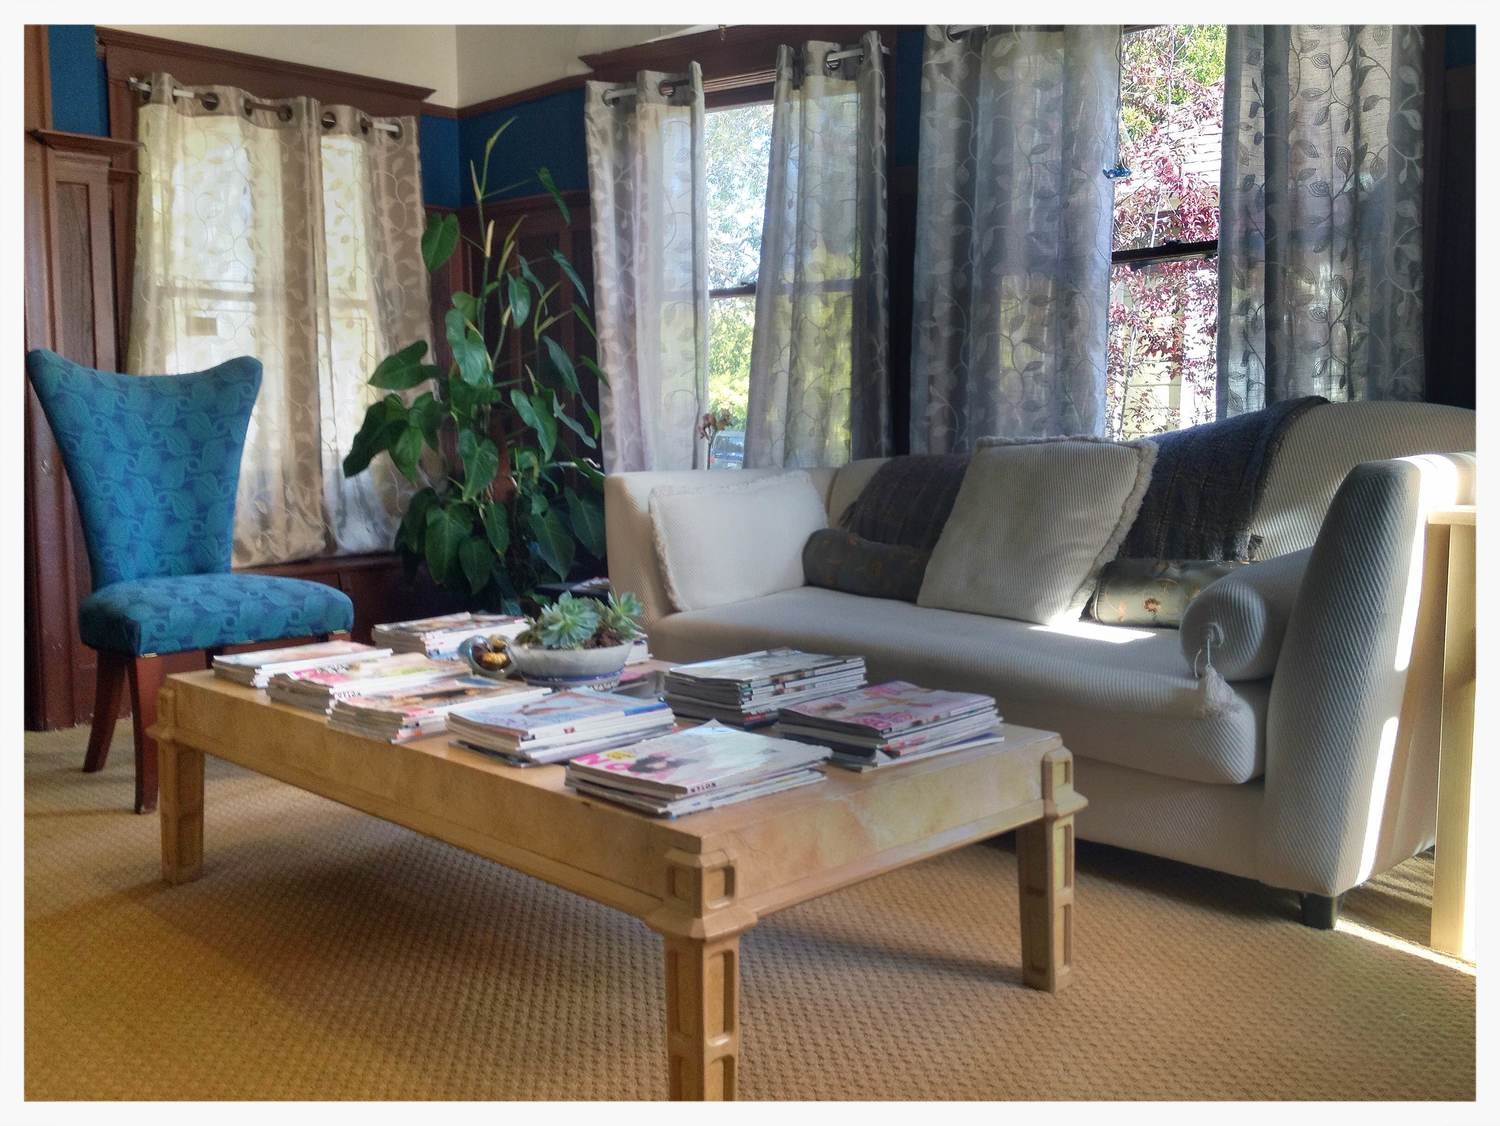 Our convenient SanFrancisco and East Bay Area Marriage Counseling locations, offer spacious, beautiful and comfortable spaces  to engage in your couples therap y or i ndividual adult ,  teen or child  psychotherapy work.